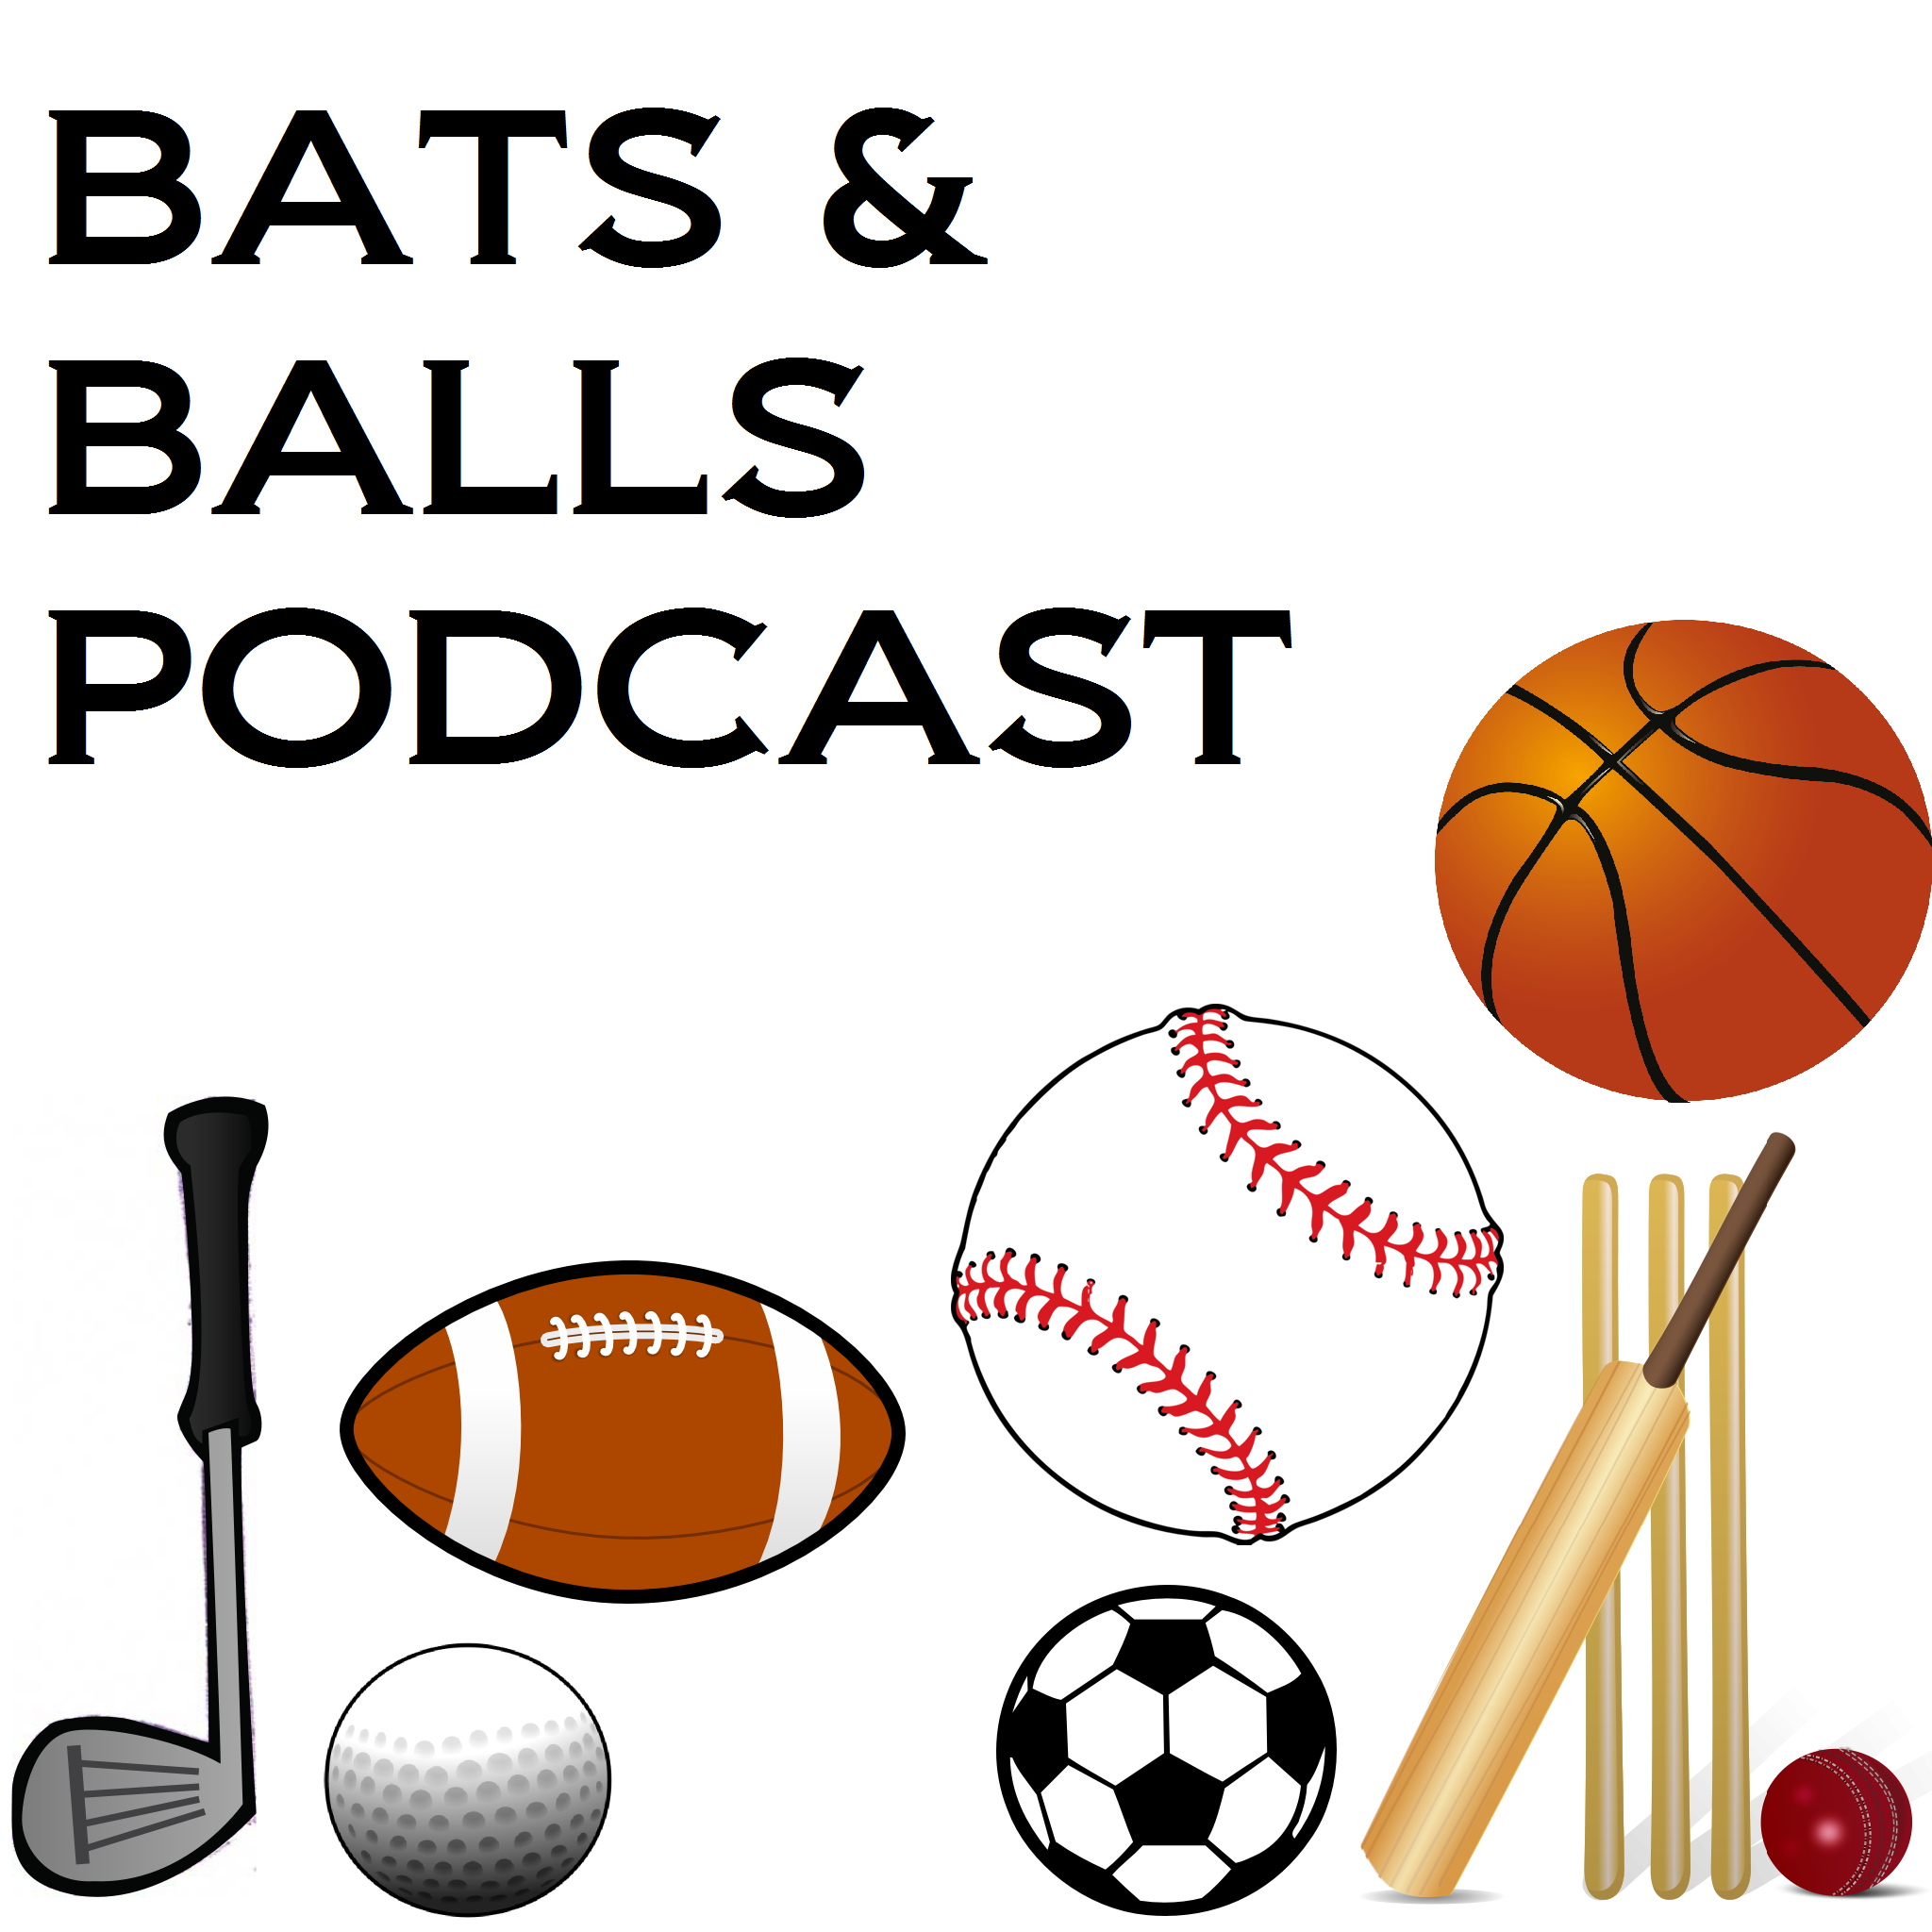 Bats and Balls Podcast logo